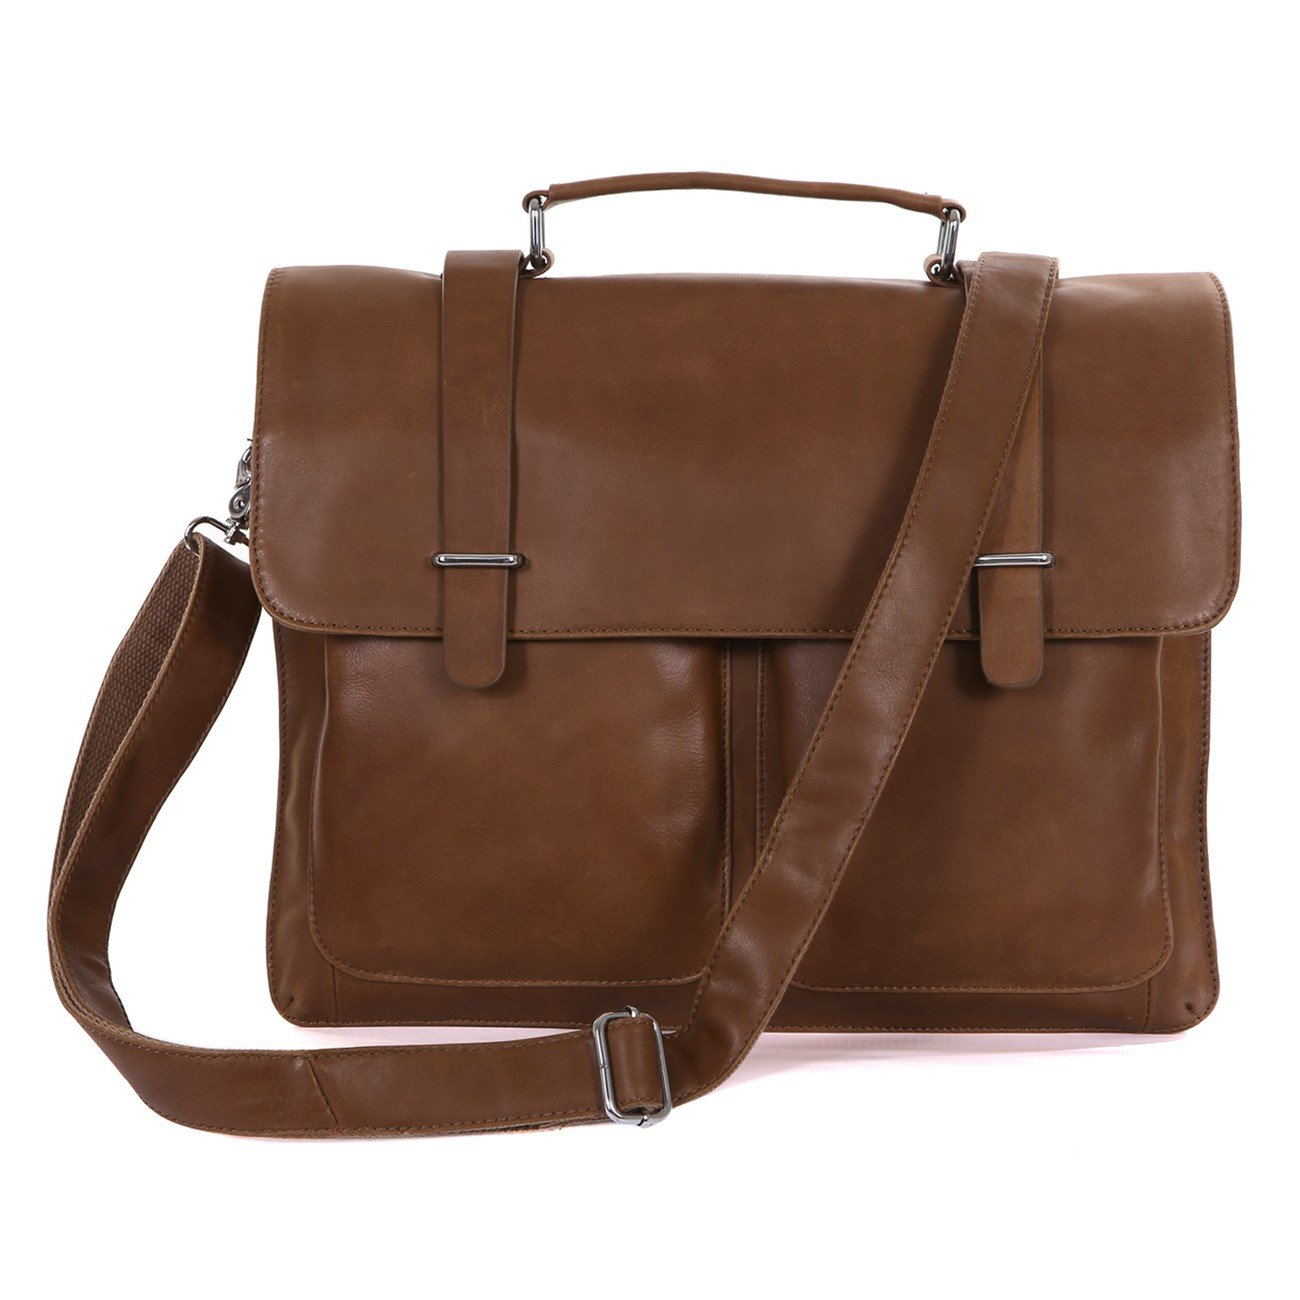 Genda 2Archer Real Leather Briefcase Laptop Tote Document Messenger Business Bags (Light Brown) by Genda 2Archer